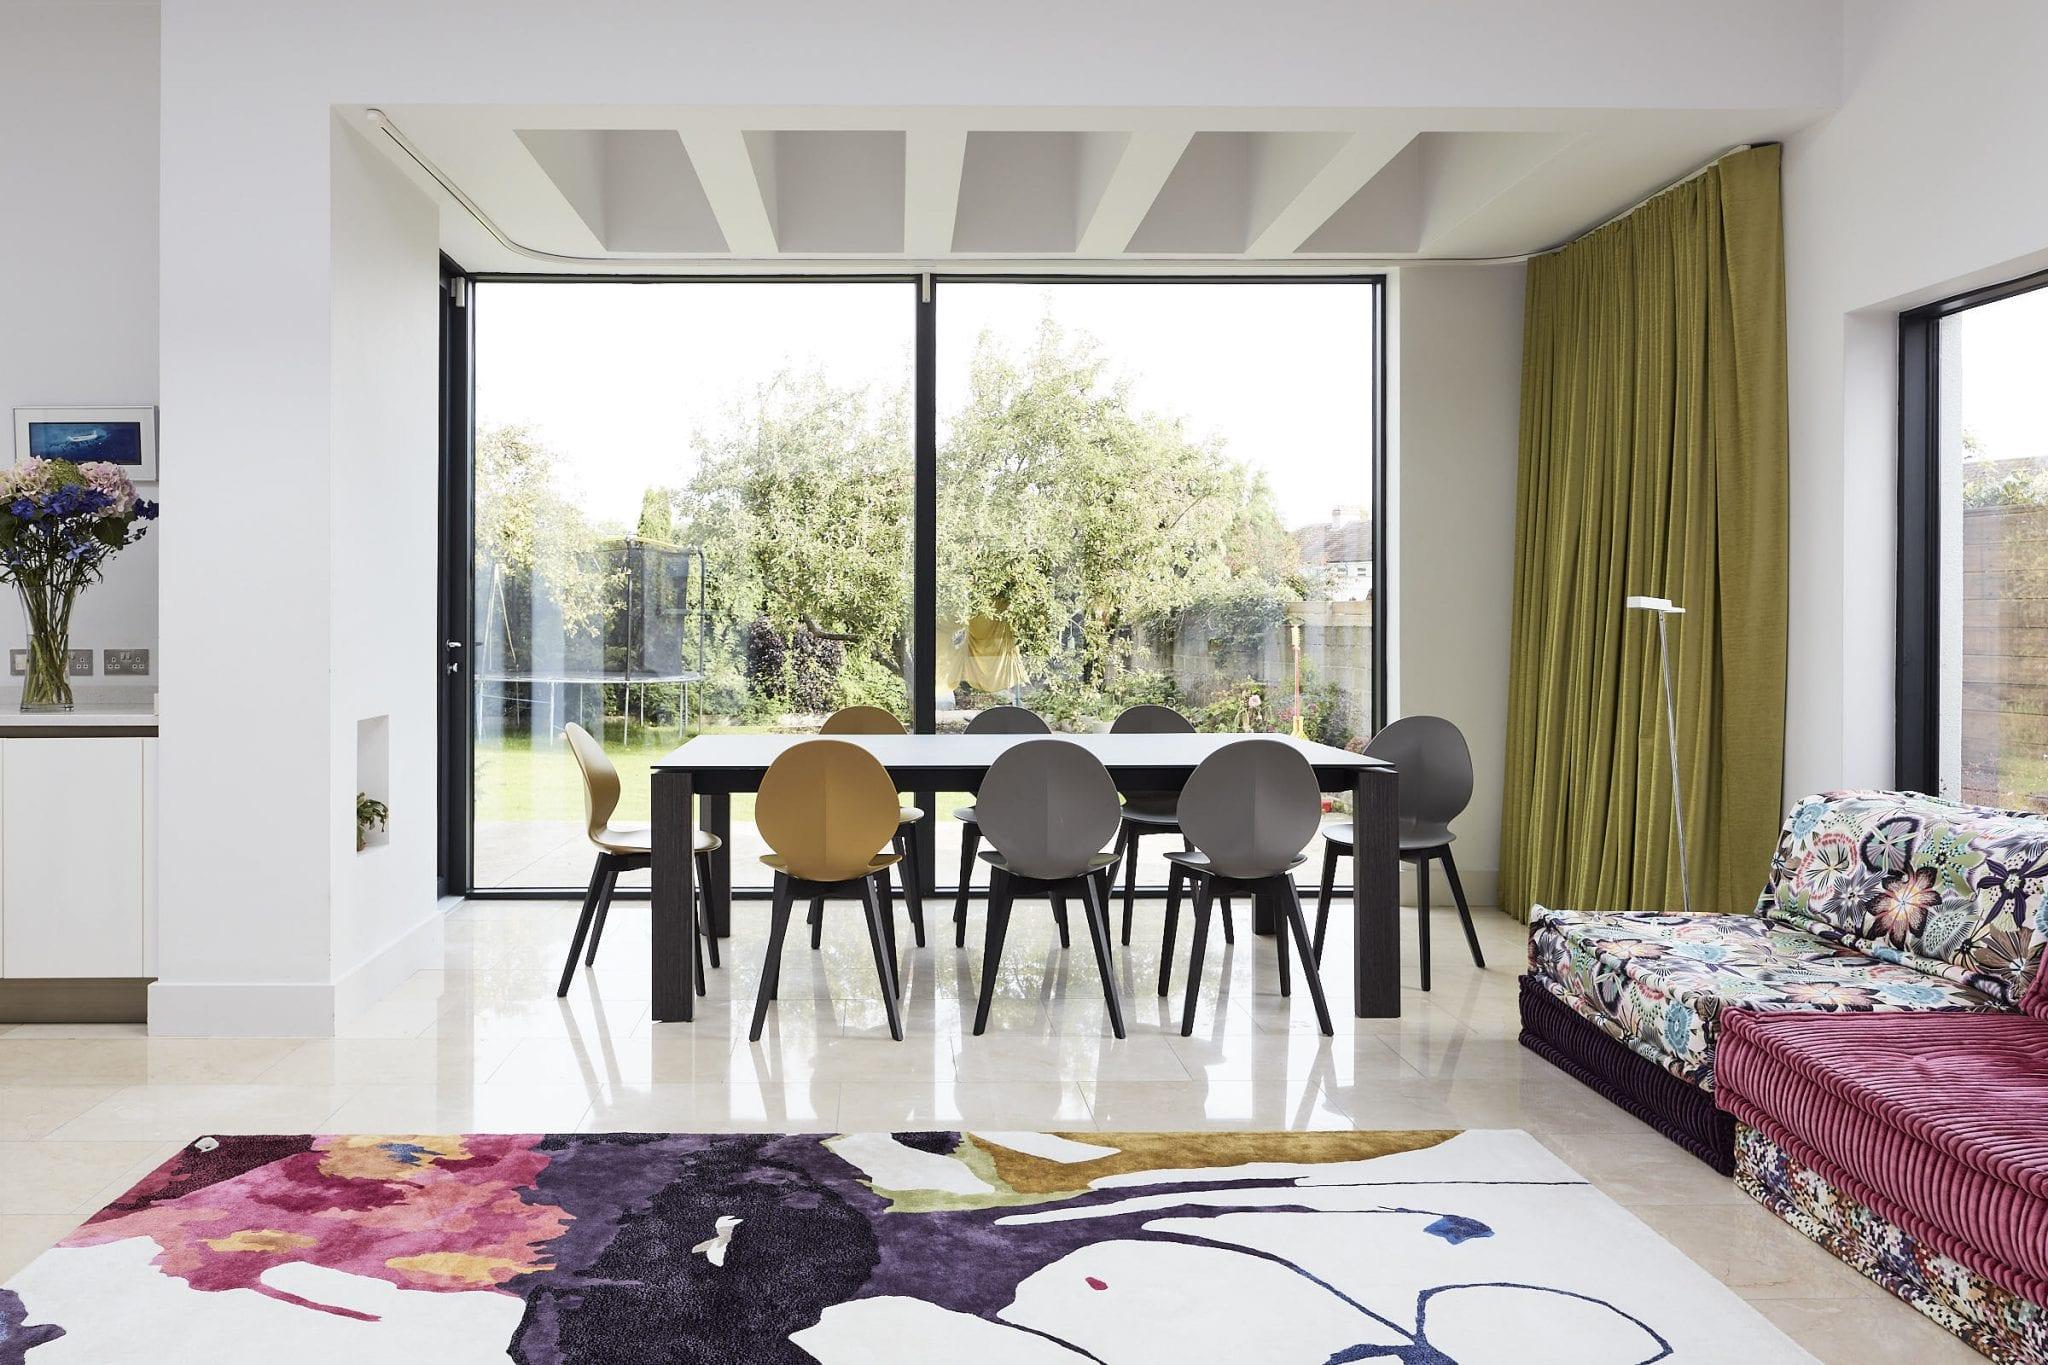 Open plan living room,rug,chairs,couch,curtains,artwork